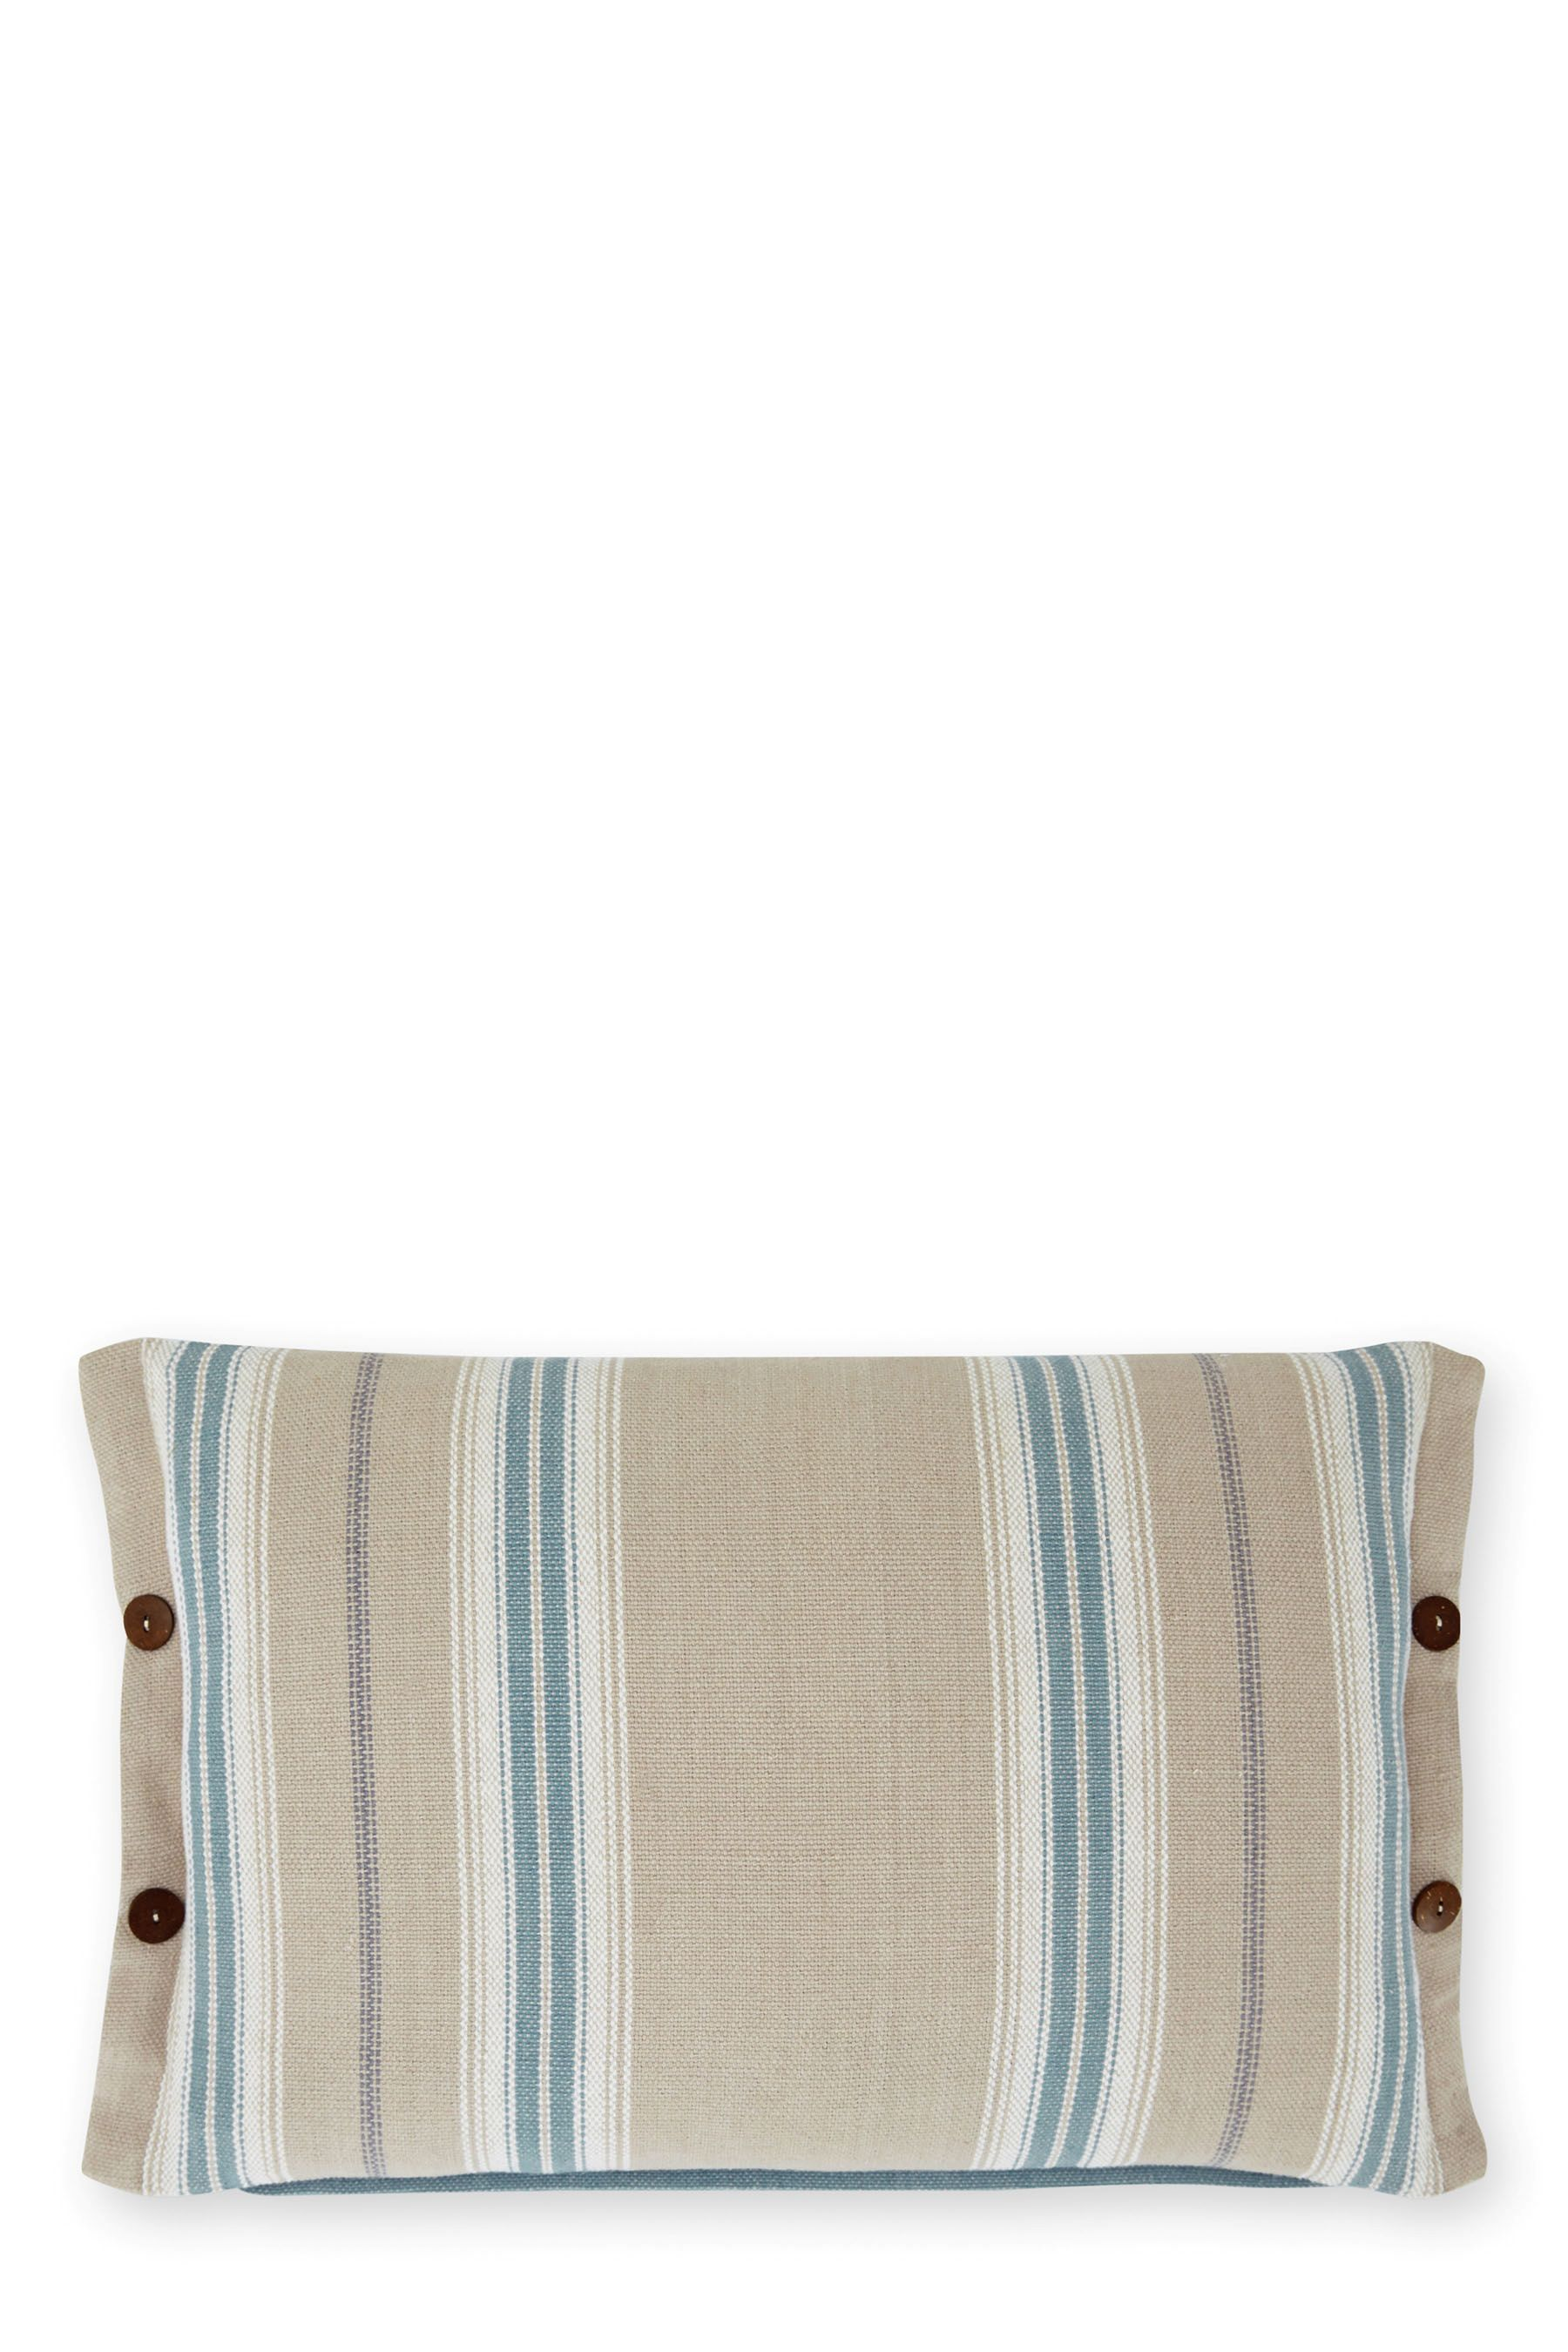 Buy Marine Woven Stripe Cushion from the Next UK online shop